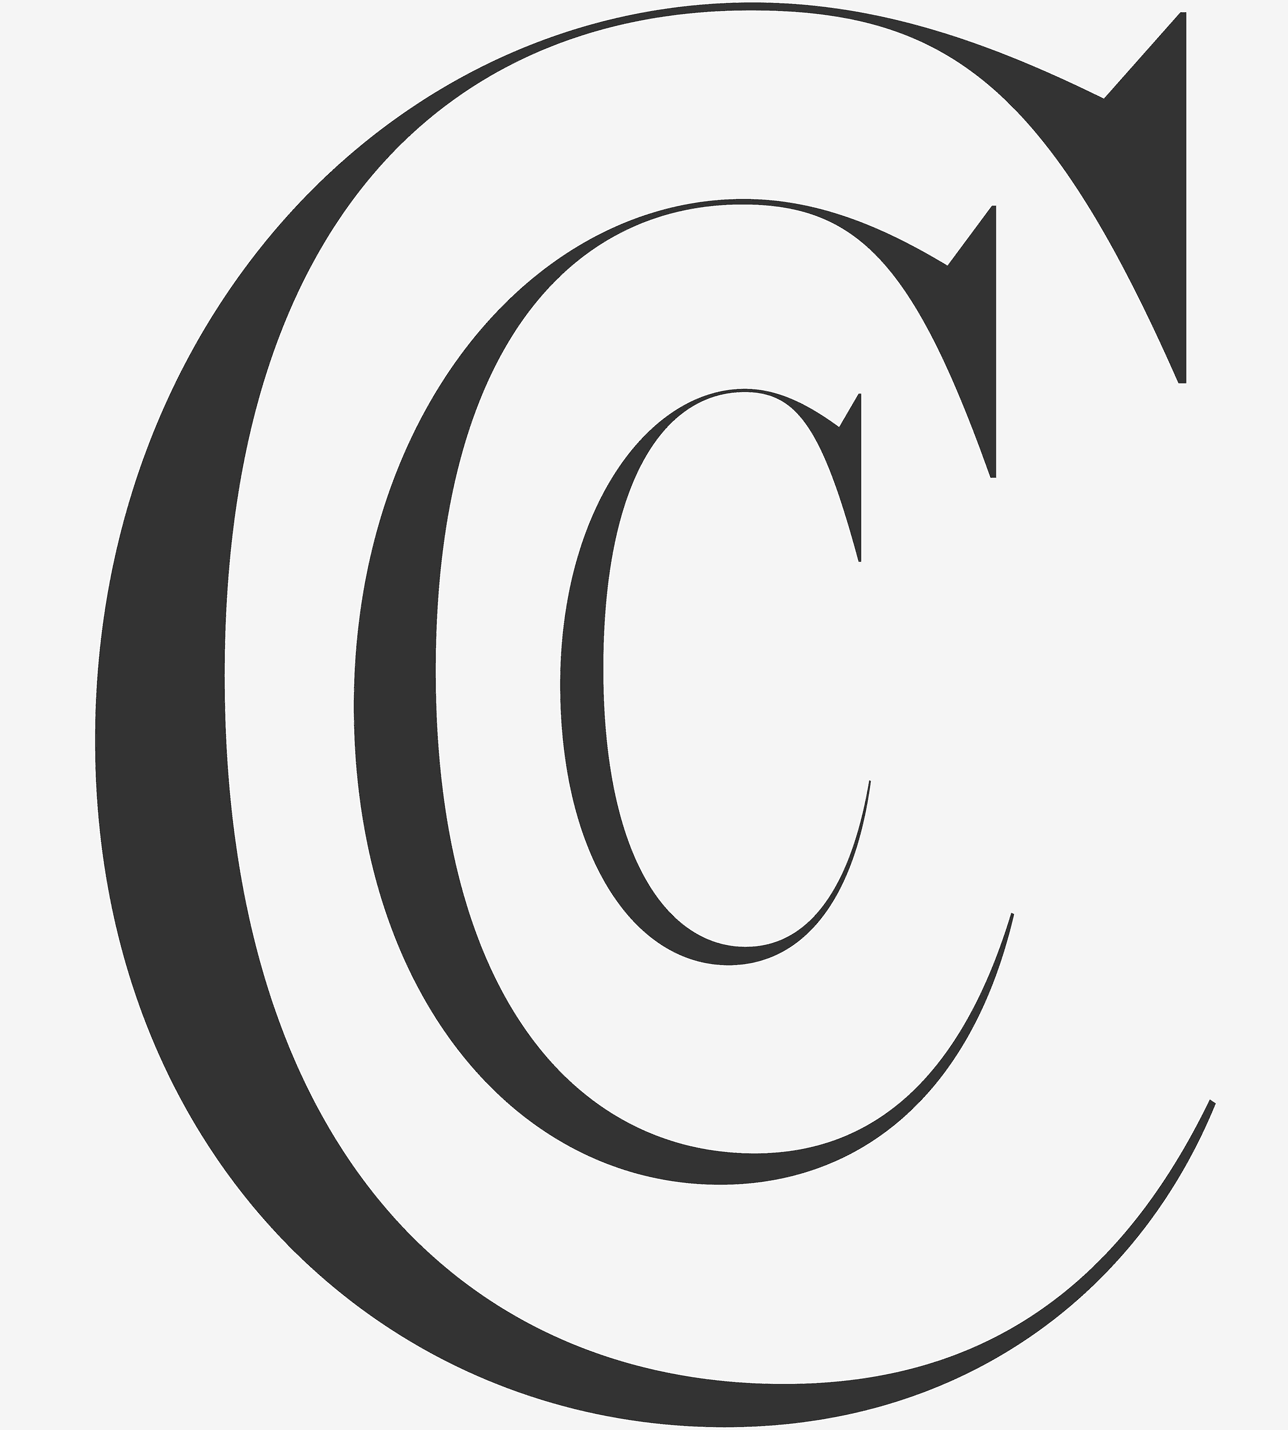 Chronicle Hairline Regular, Condensed and Compressed